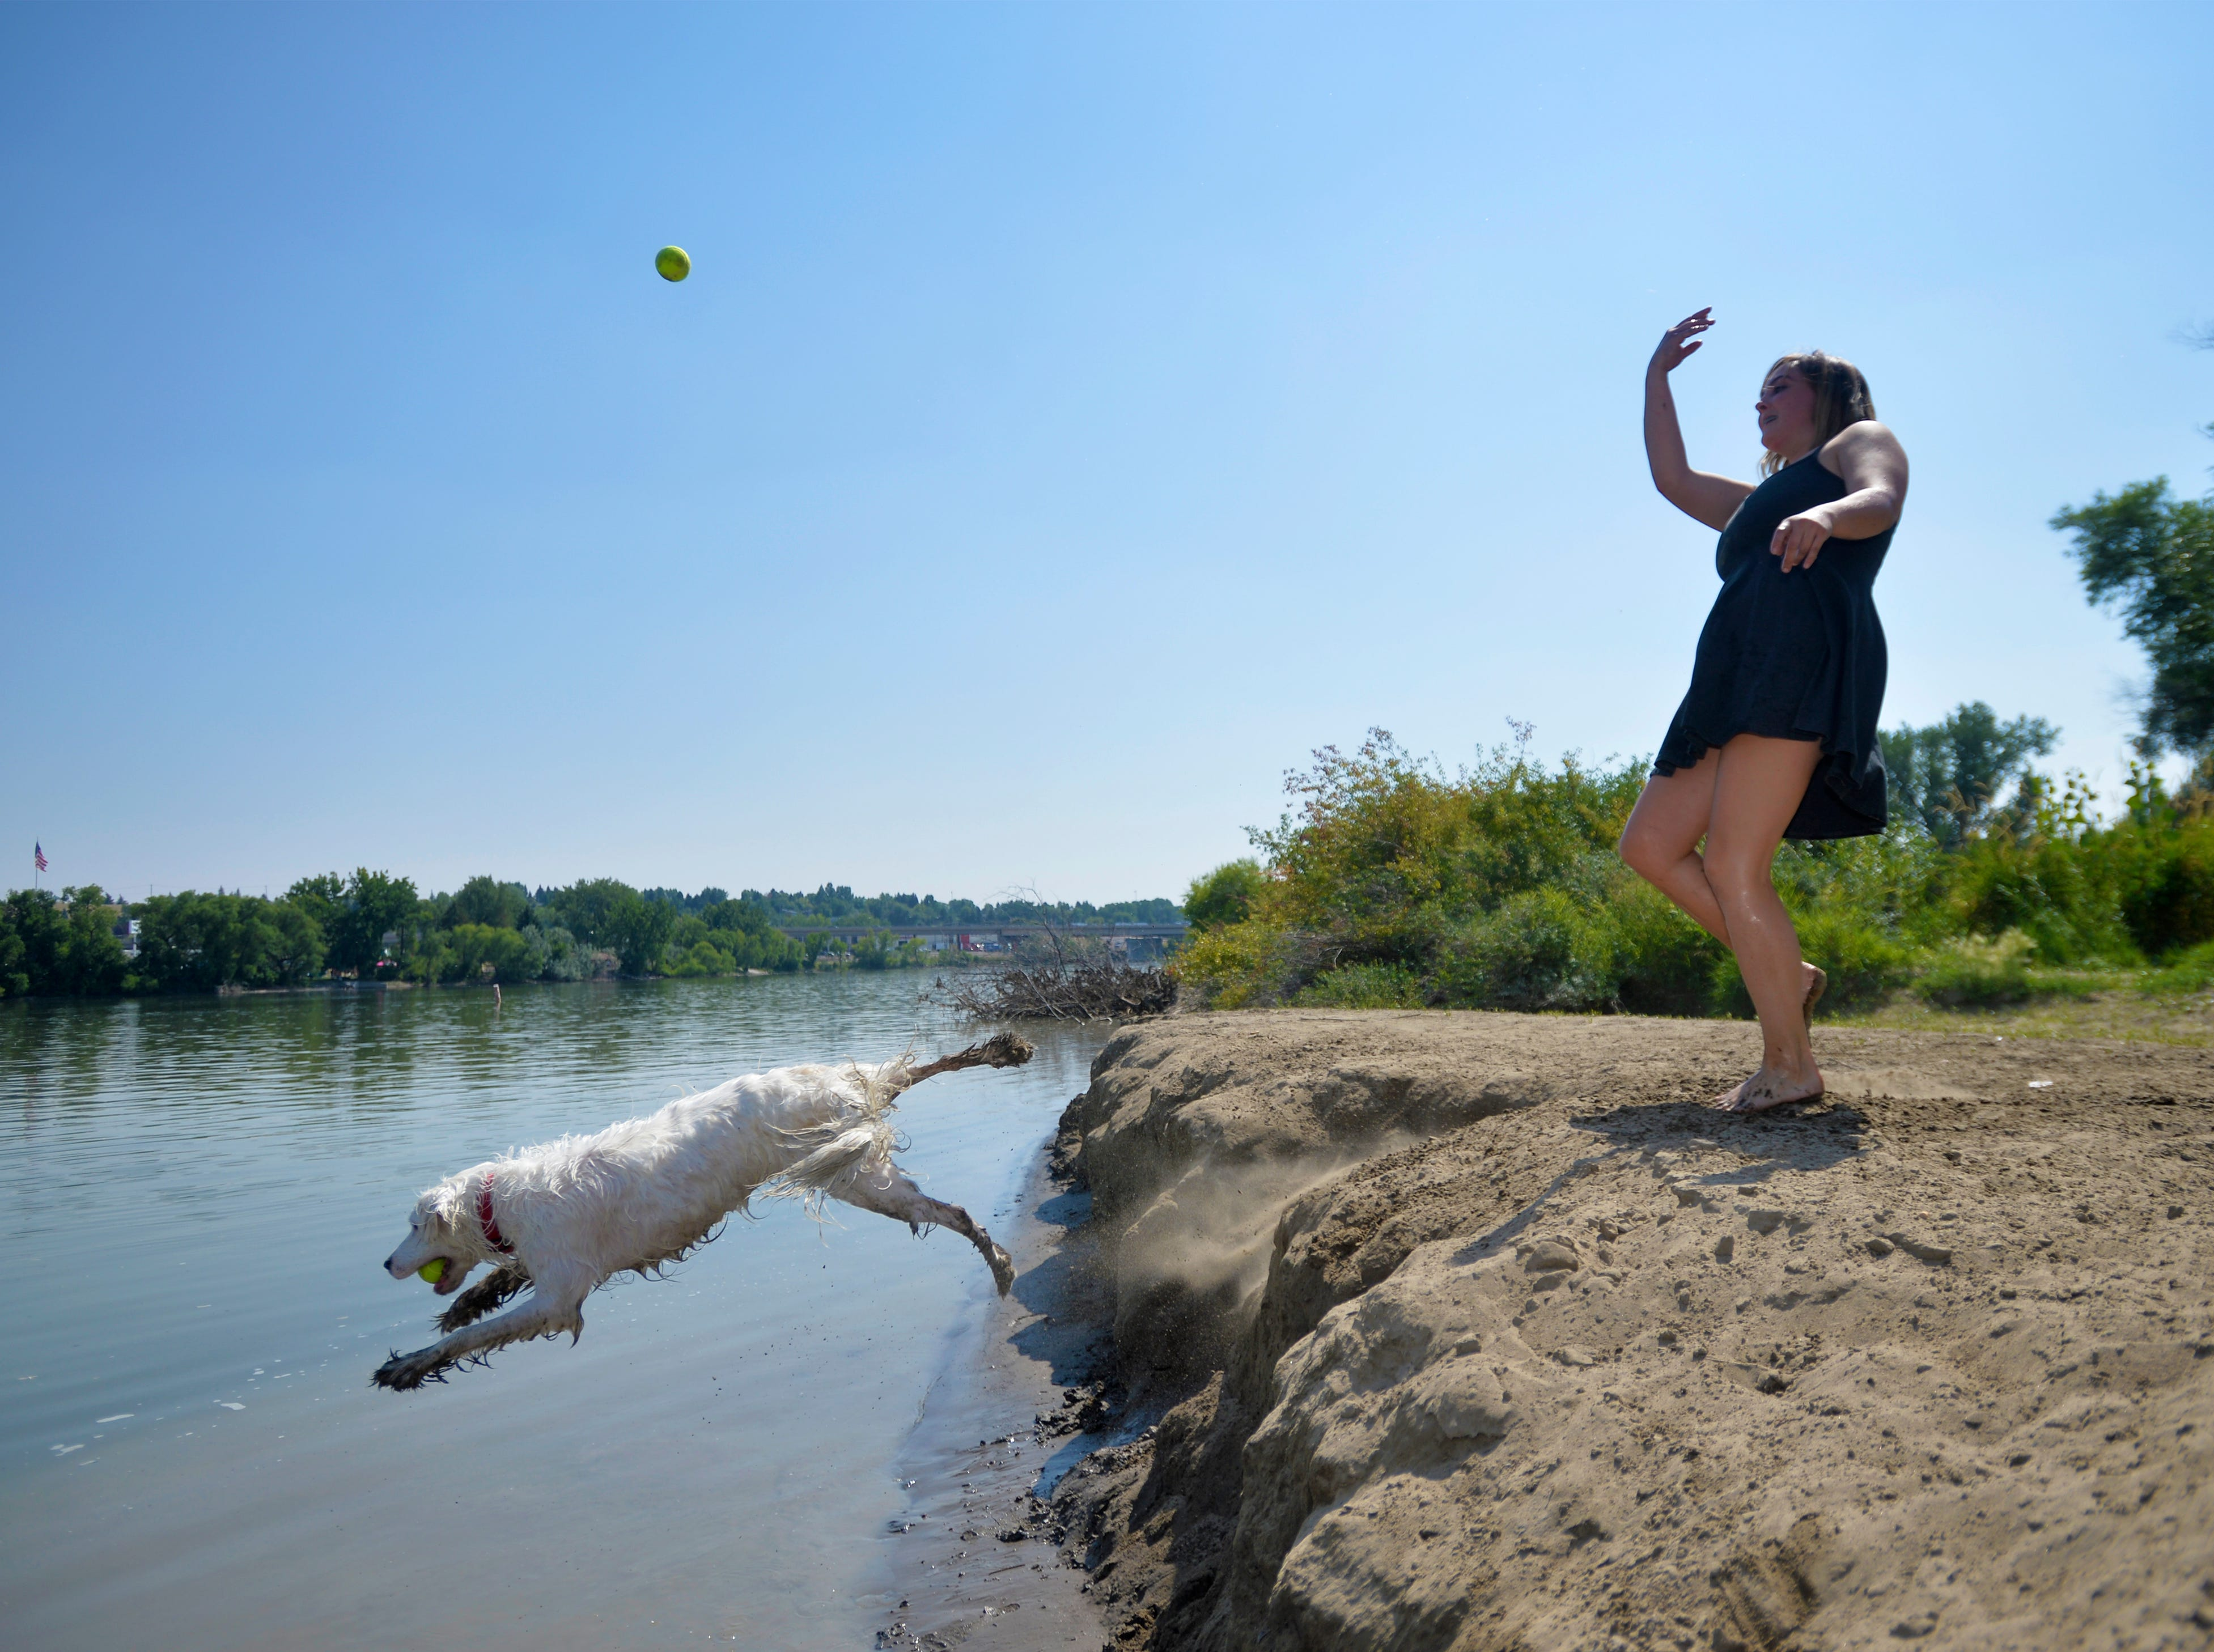 Lacey Mans throws another tennis ball for Max as they try to stay cool in Thursday's heat wave.